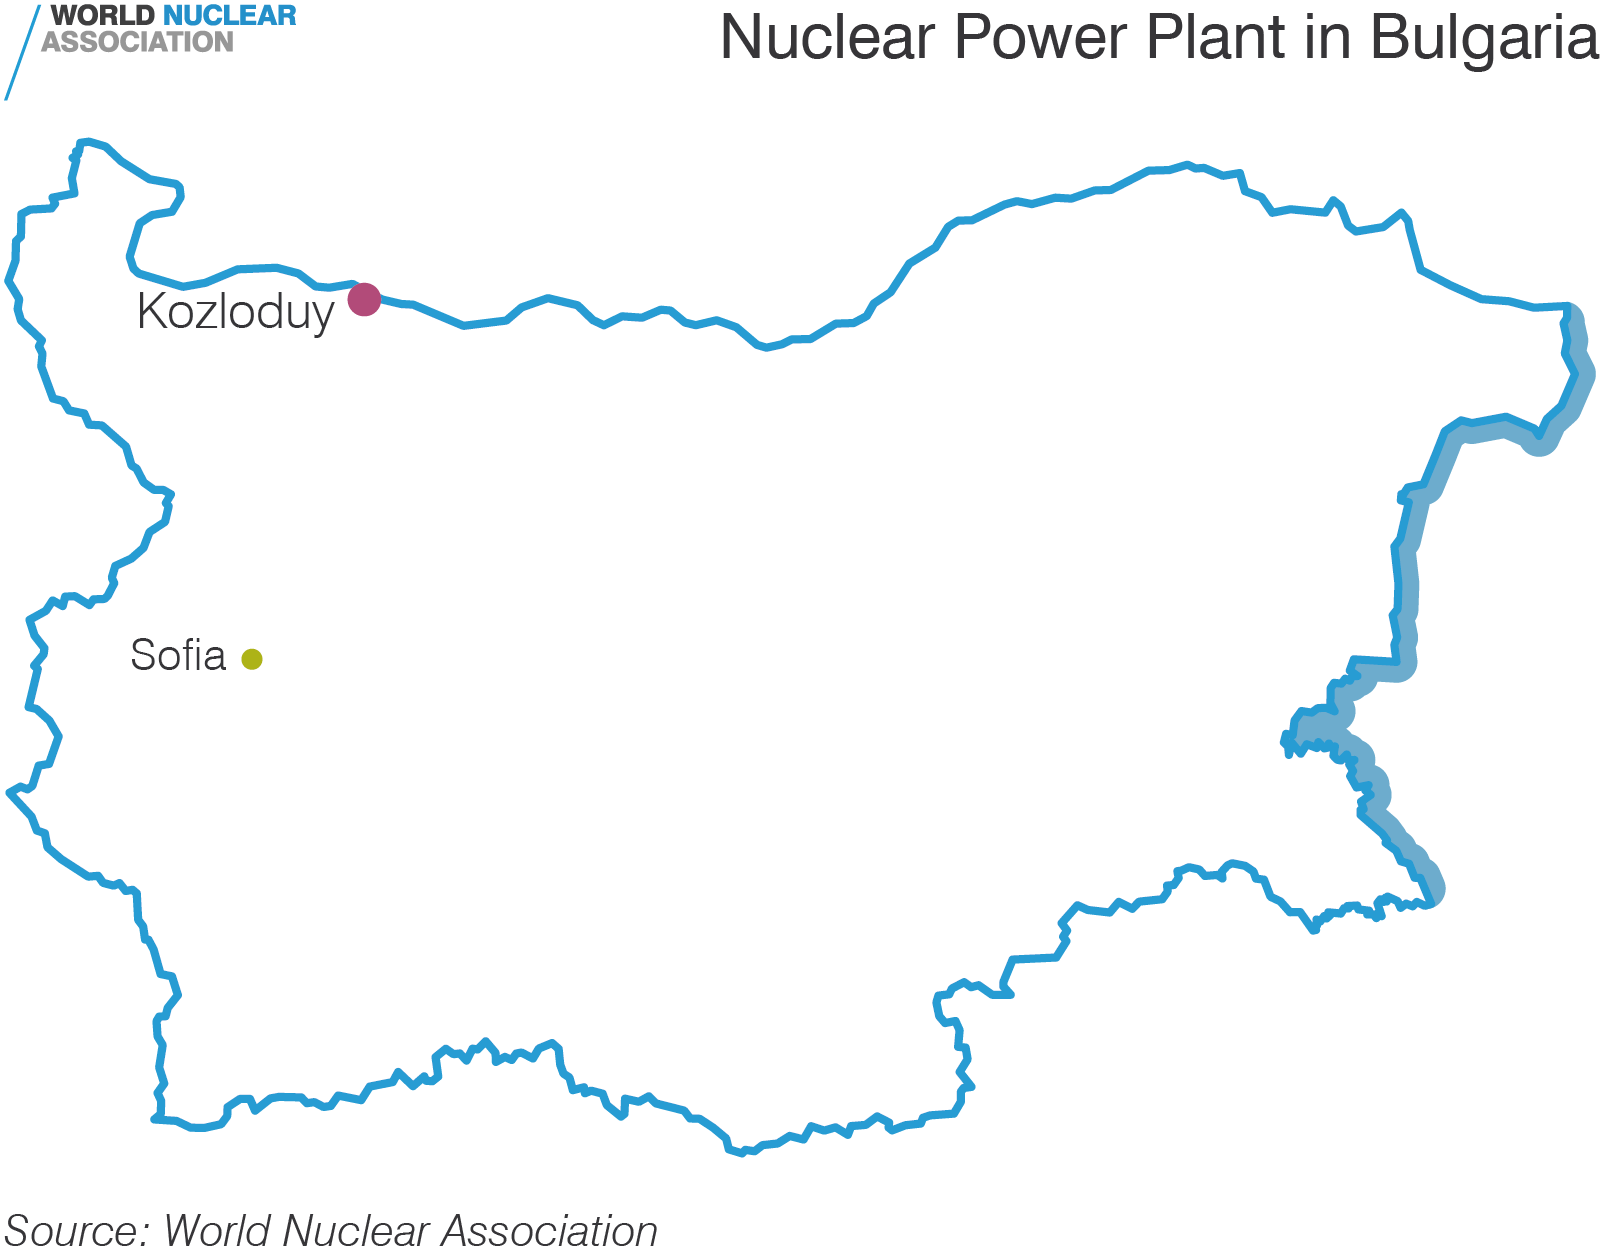 Nuclear Power Plant in Bulgaria